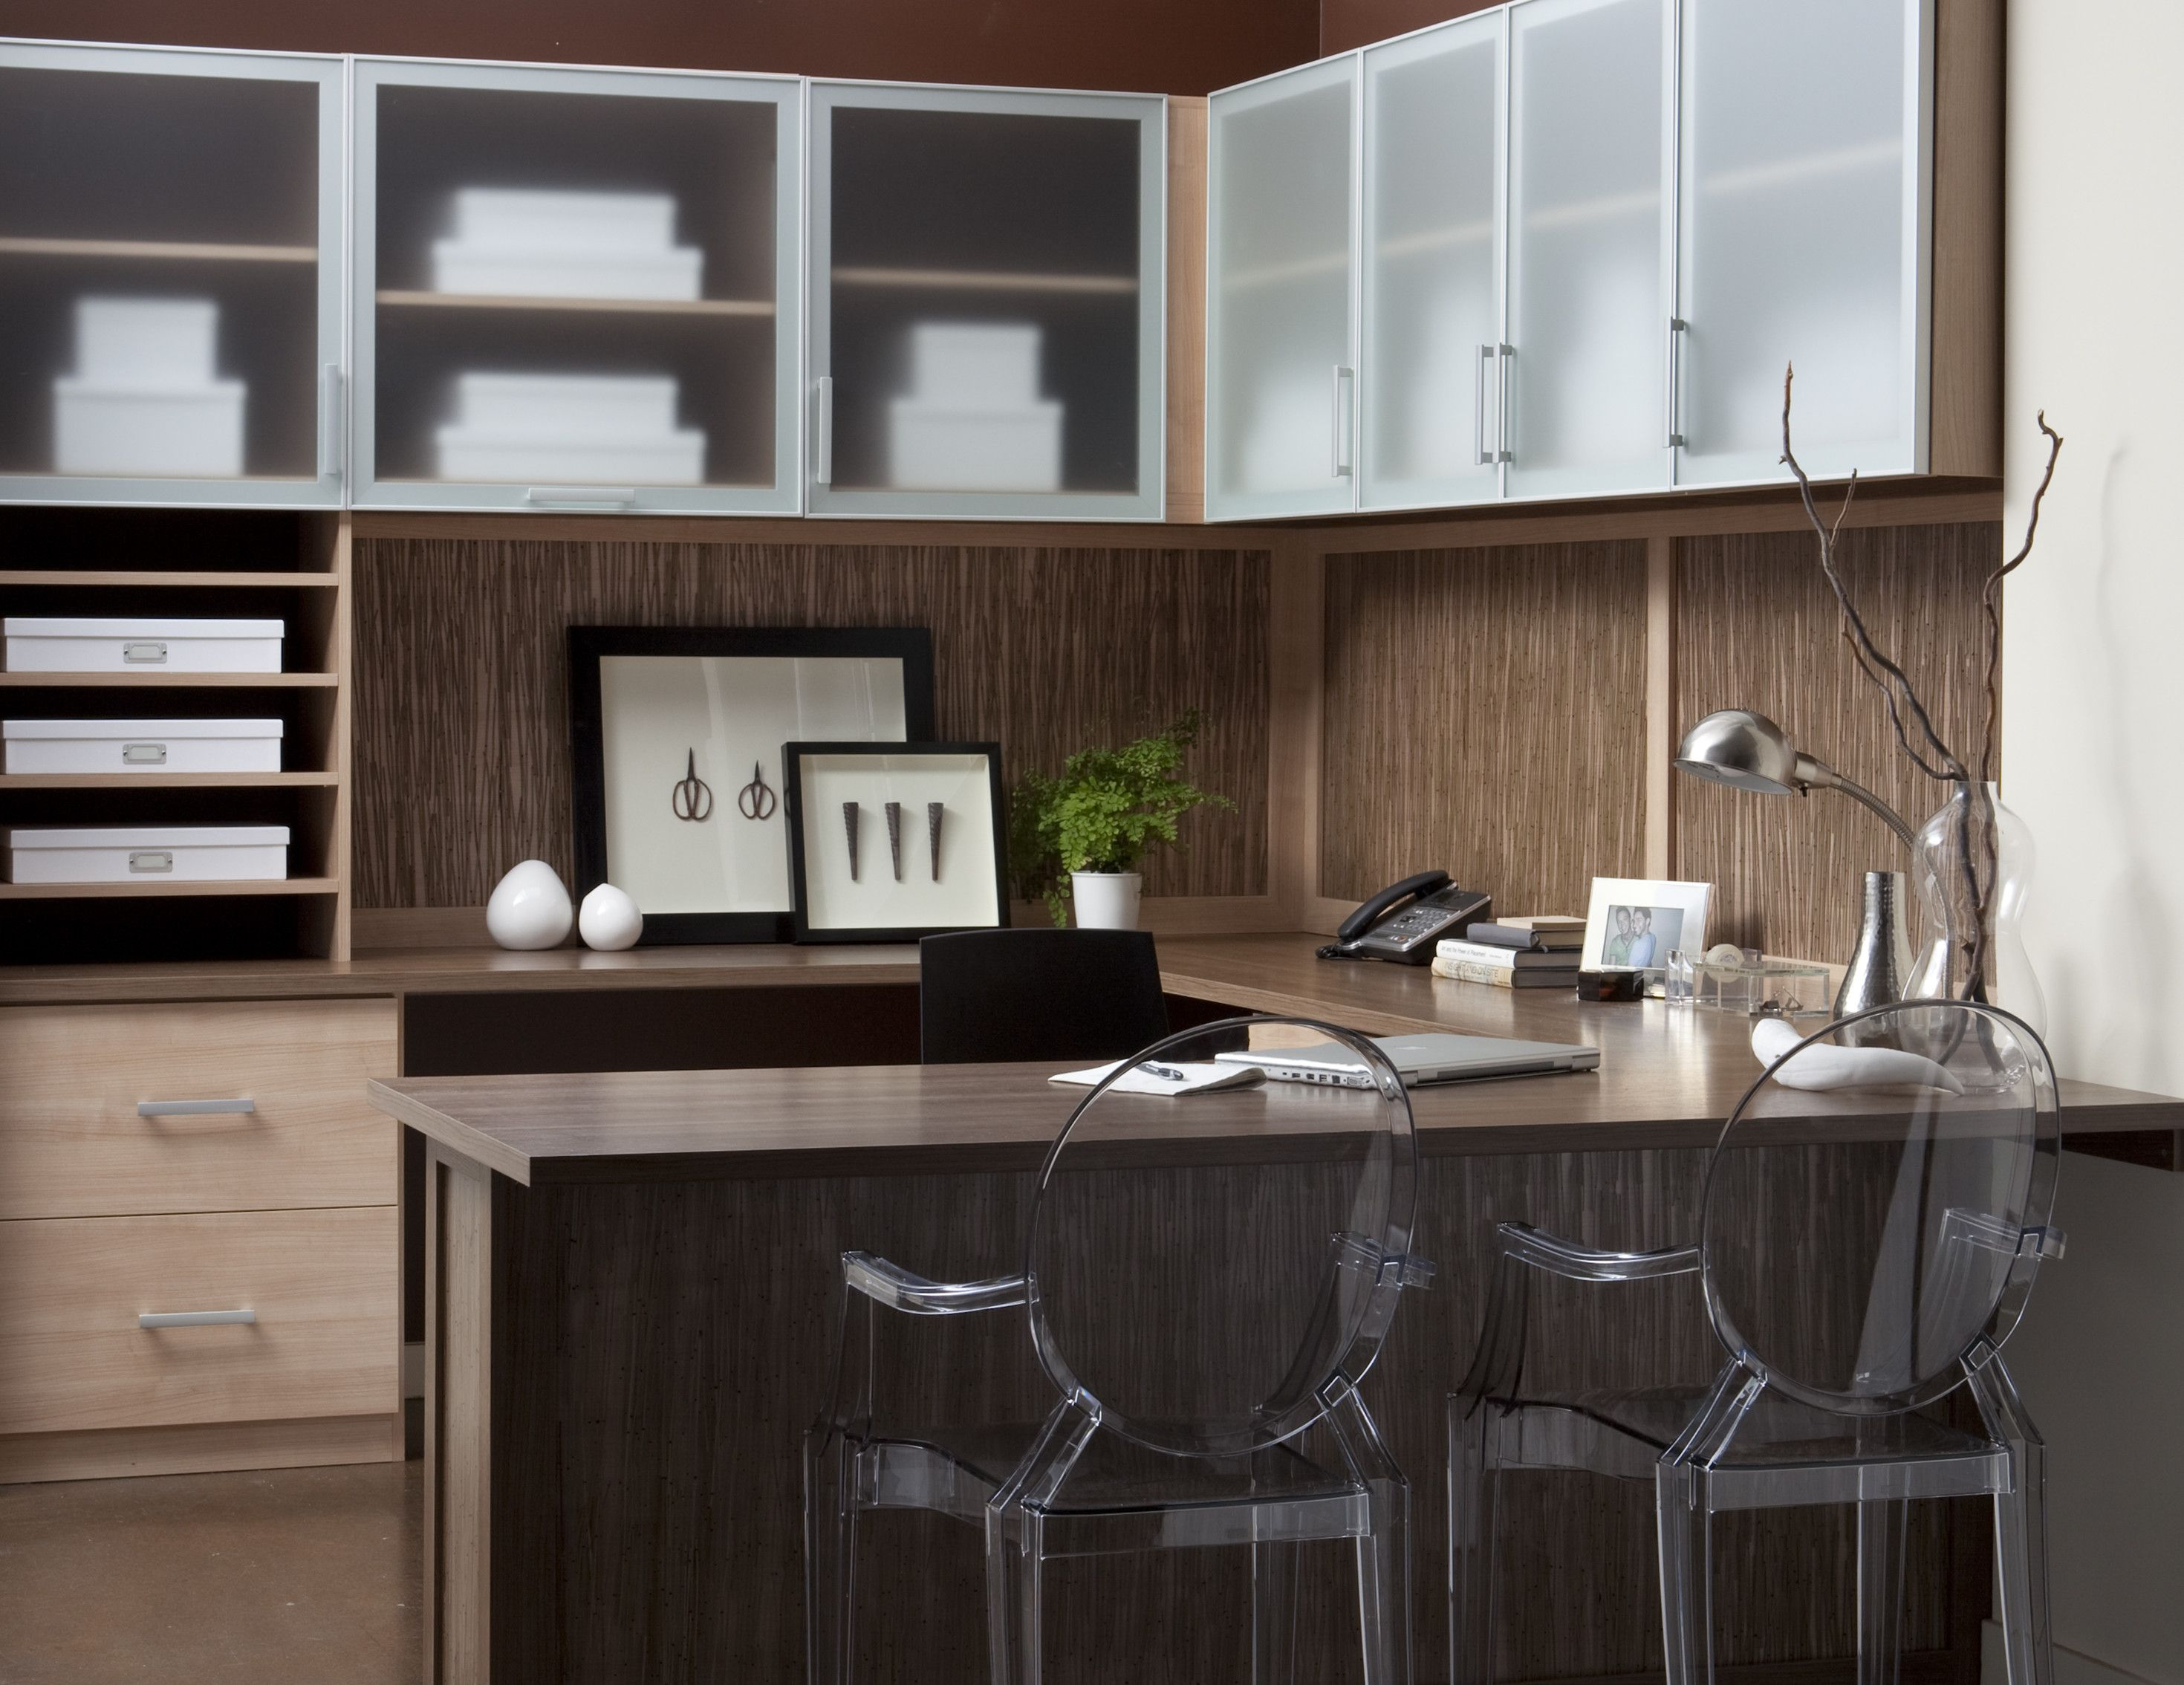 office closet design. A Custom Designed Home Office Maximizes Efficiency And Work Area. Let California Closets Design That Is Both Functional Stylish. Closet O